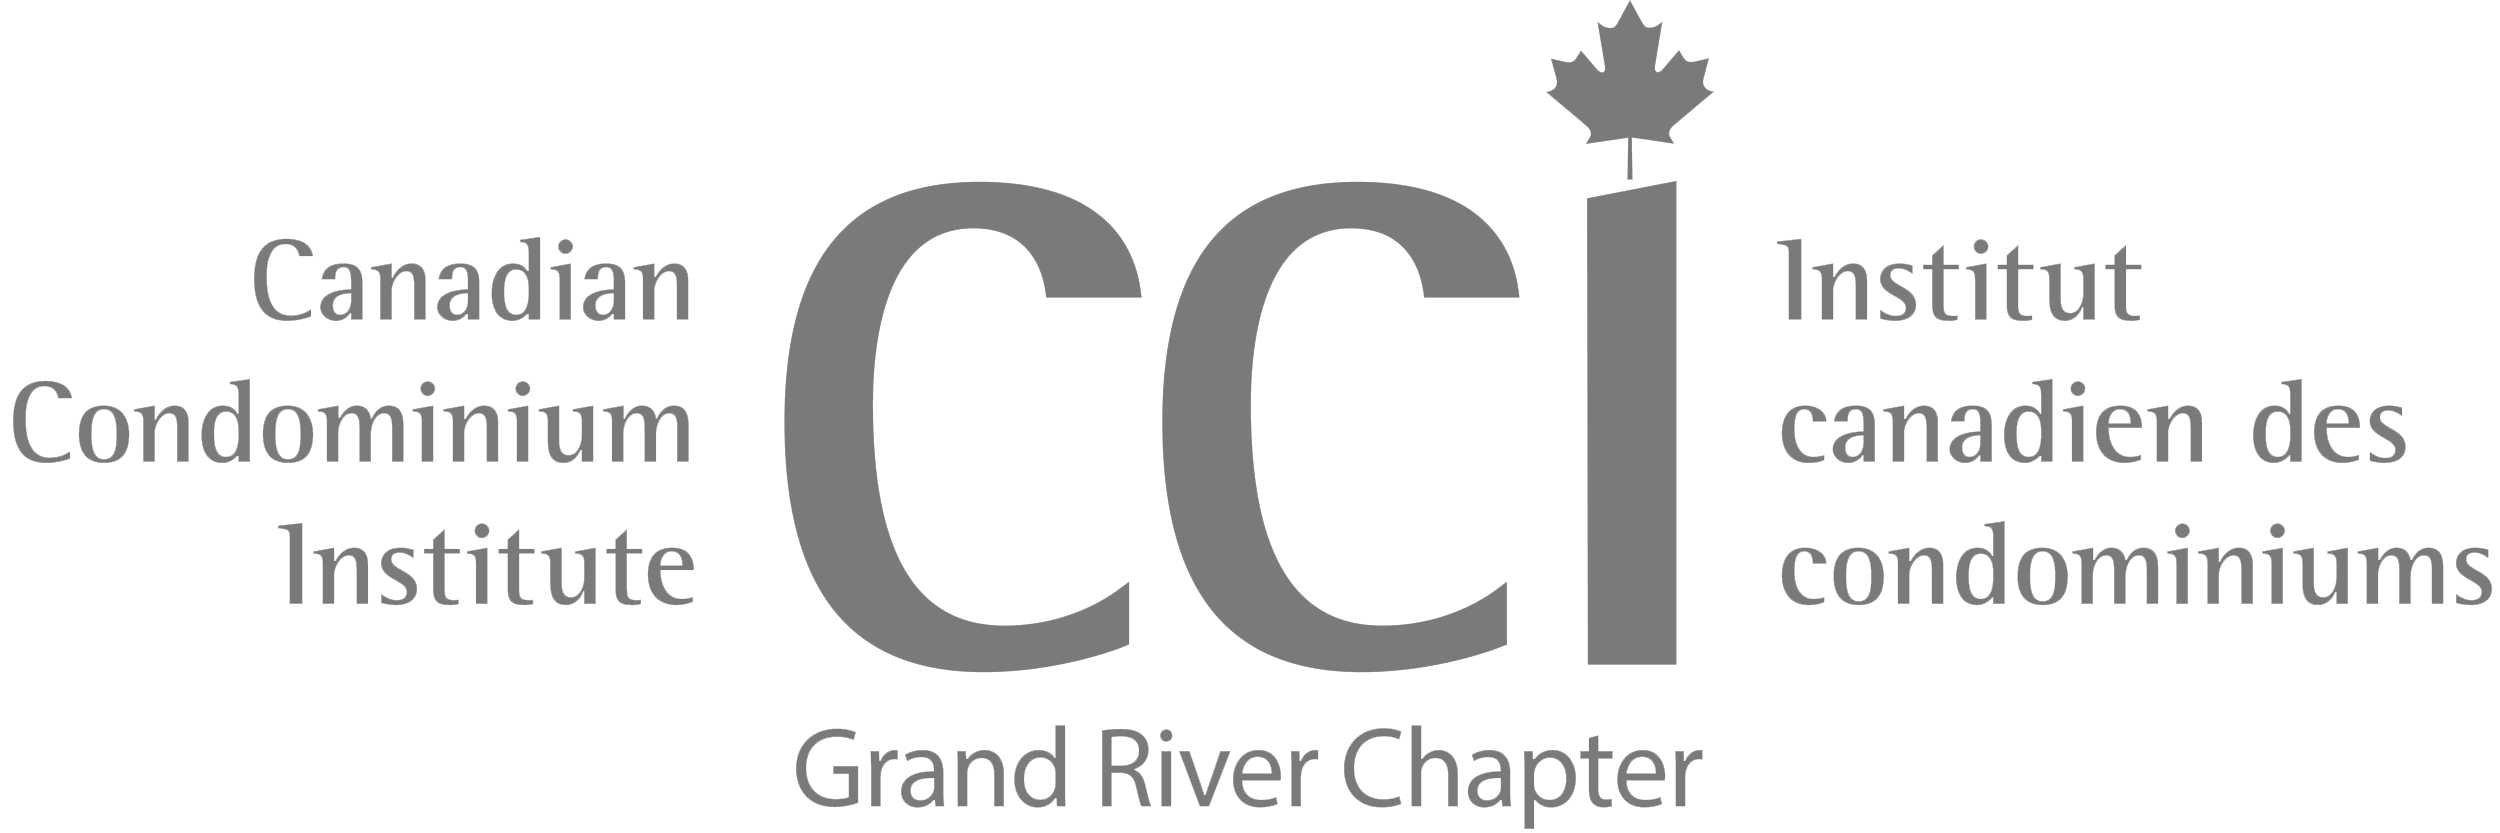 CCI-Grand-River-large.png